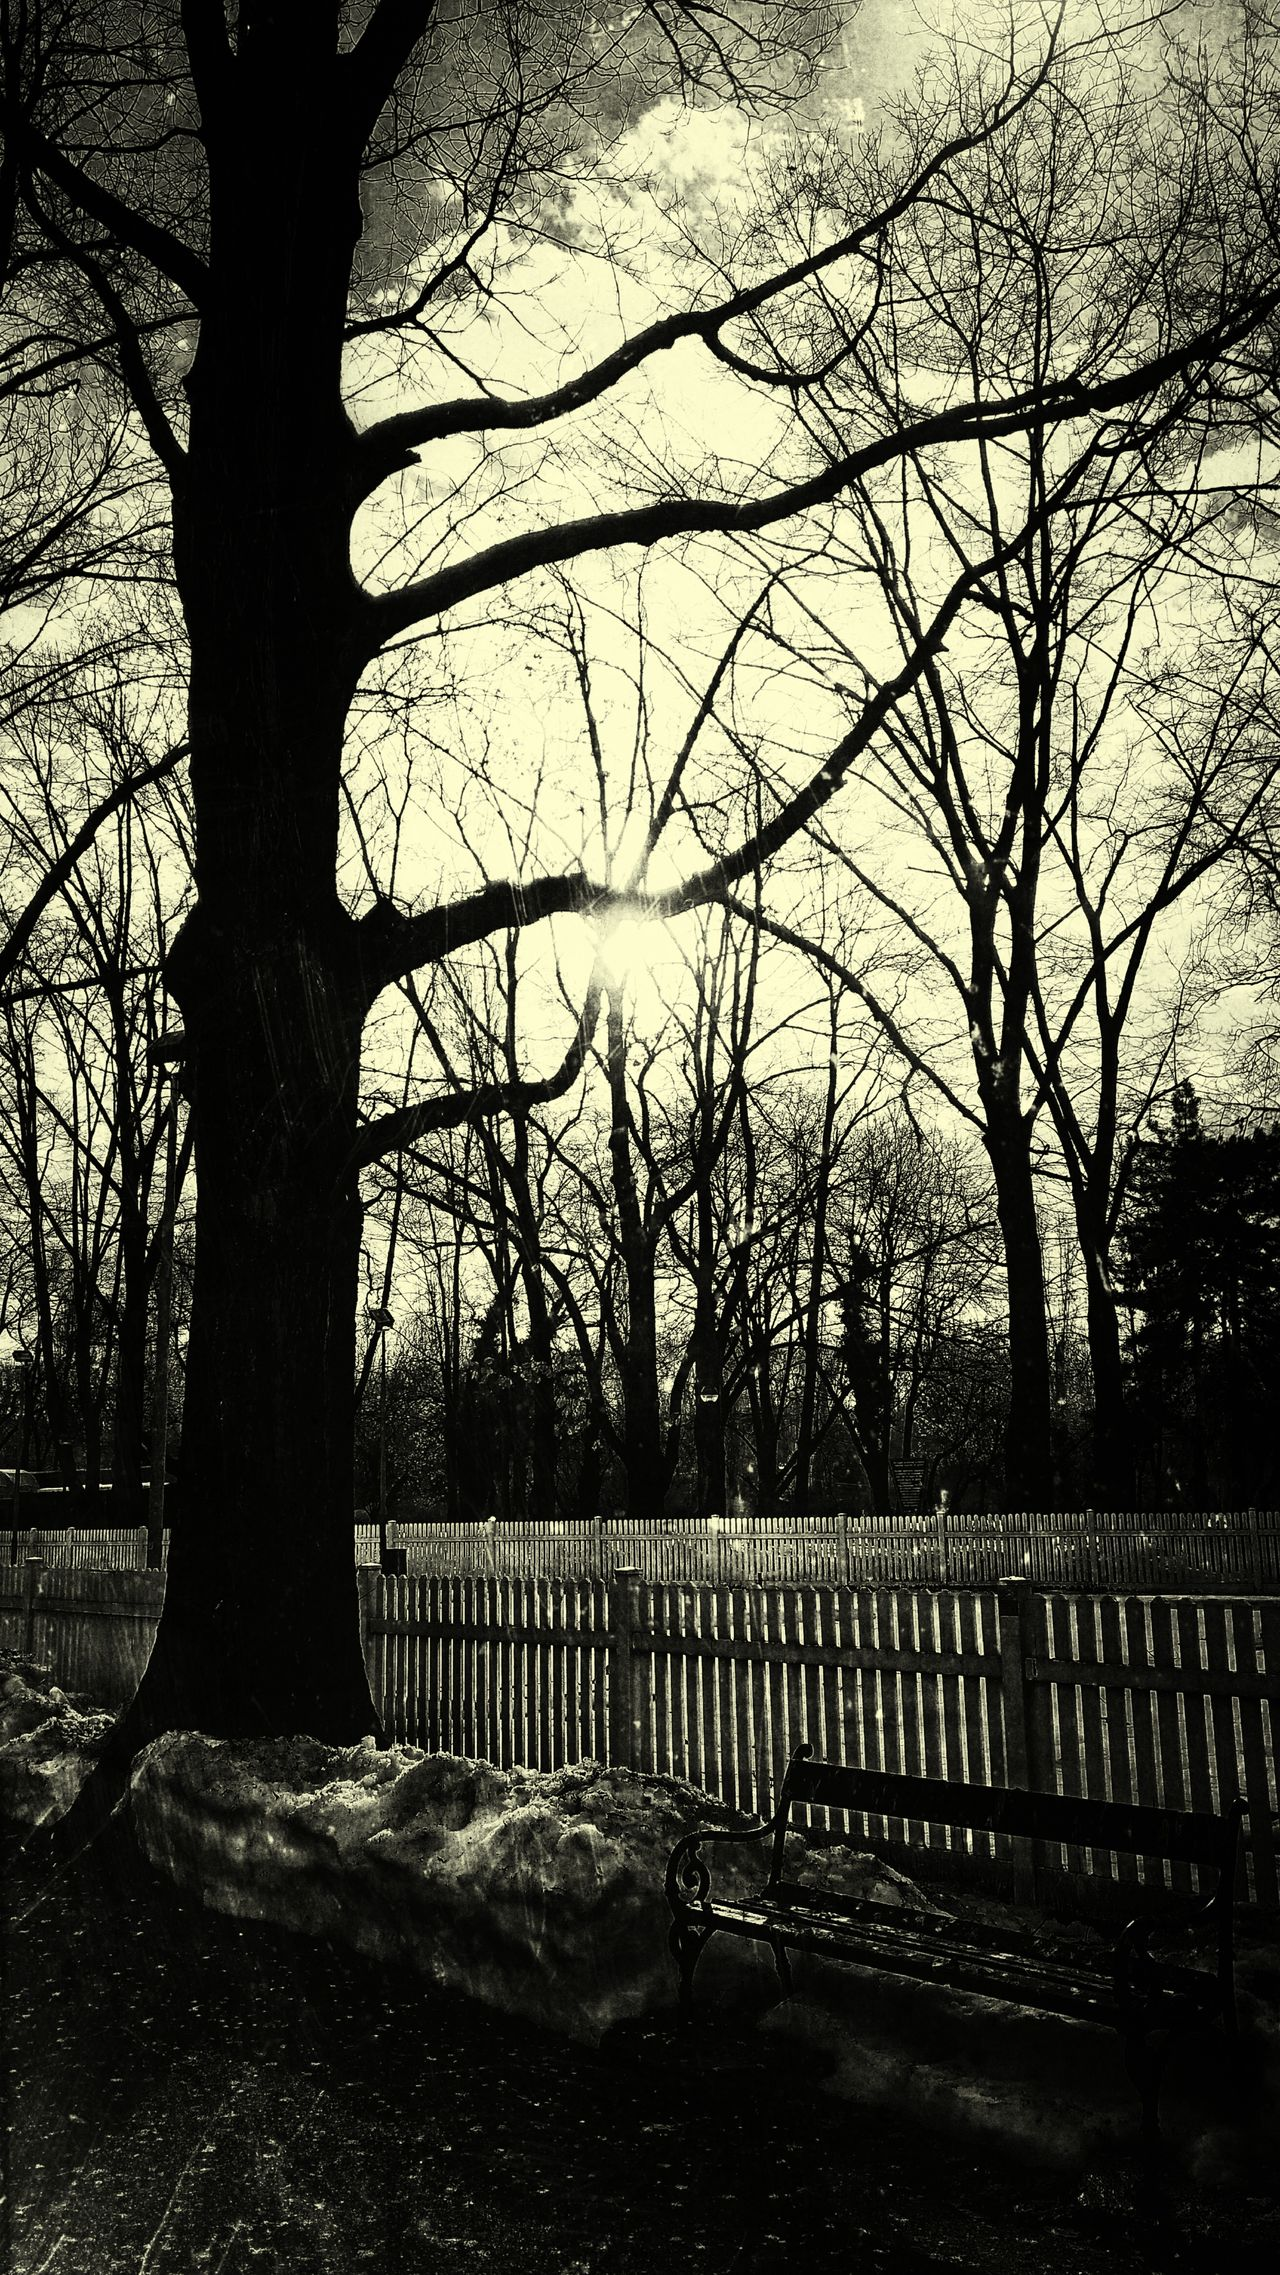 Tree Branch Bare Tree No People Day Outdoors Nature Sky Water Parks And Recreation Dramatic Sky Sunsets Parc Blue Sky Idyllic Winter Sunlight Cloud - Sky Black And White Photography Vintage Photo Sunset Scenics Nature Tree Hot Sky